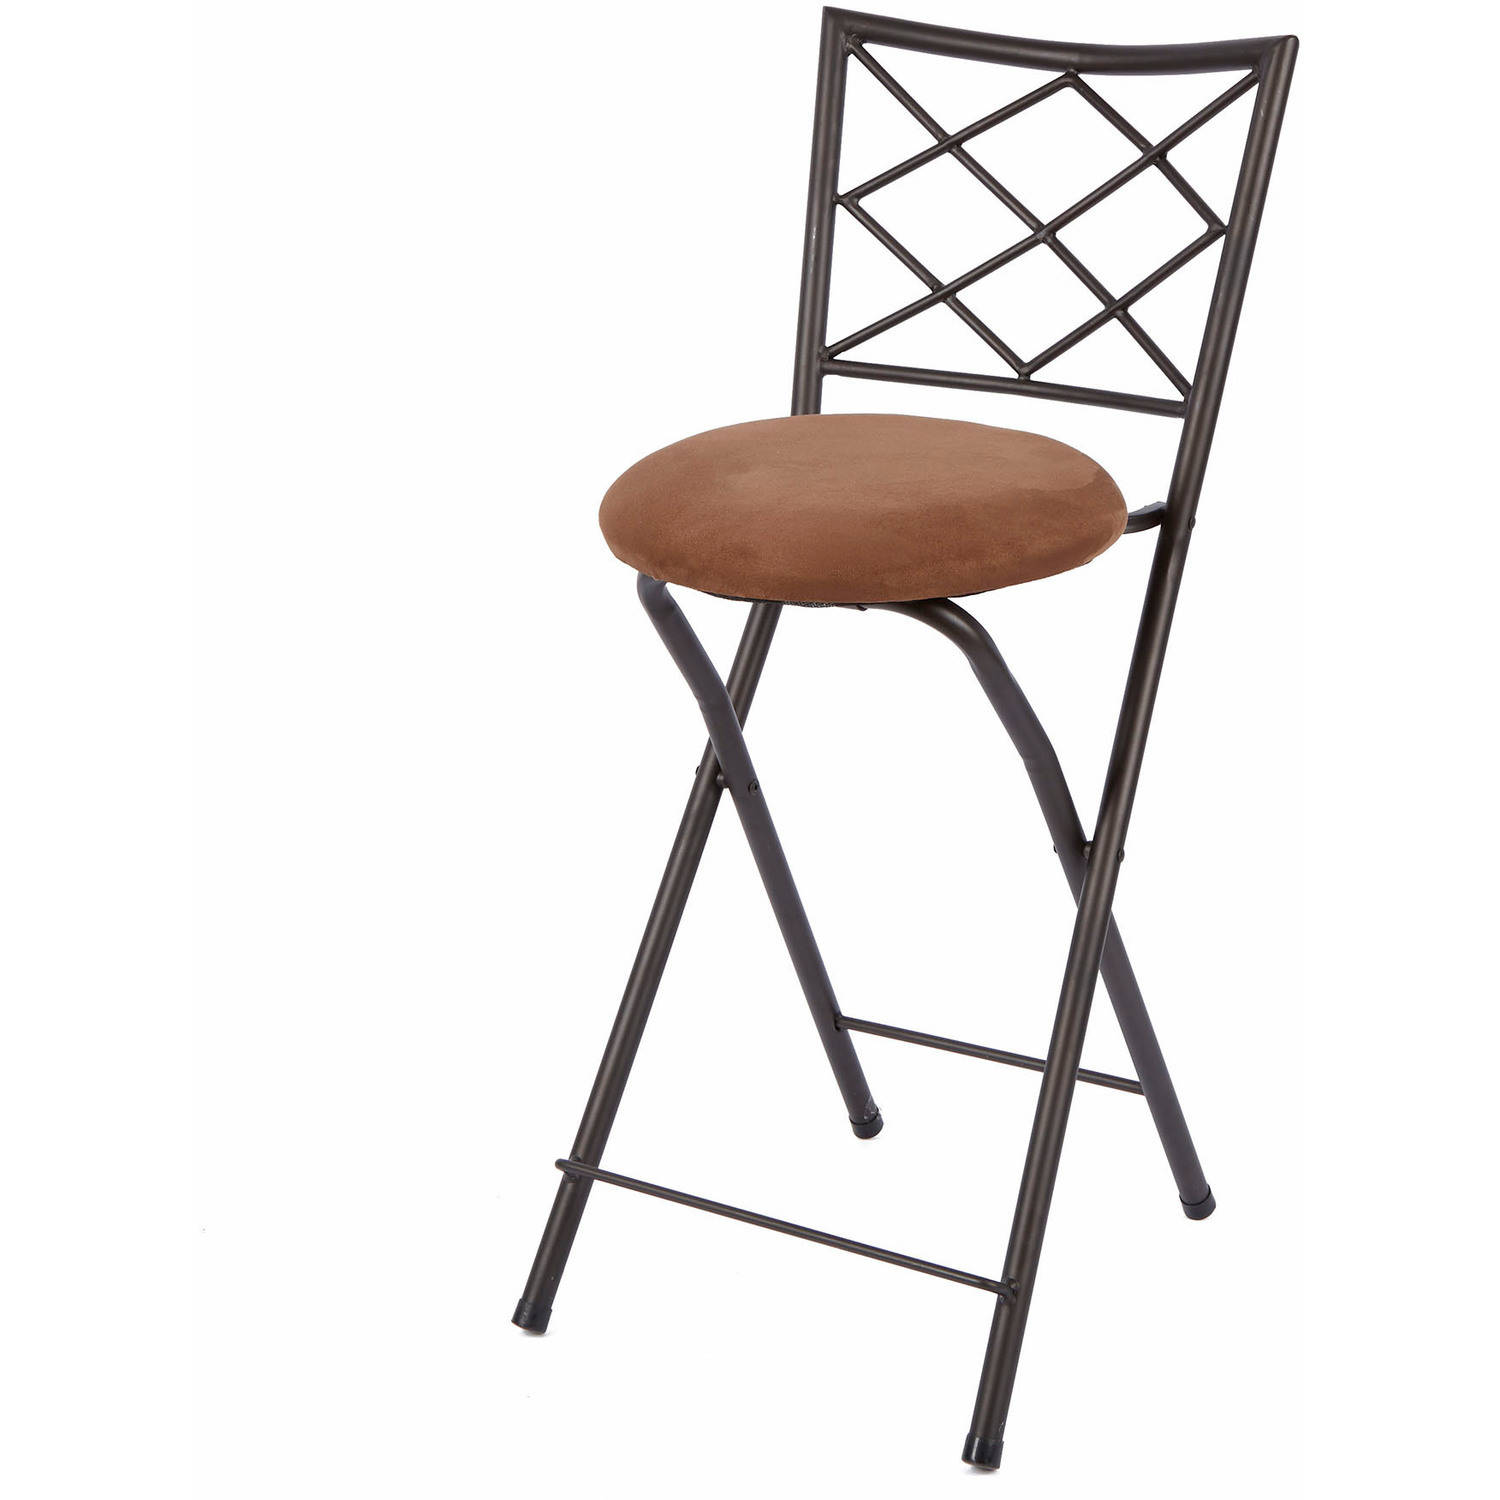 Fine Diamond Metal X Back Bronze 42 Folding Stool Tan Walmart Com Unemploymentrelief Wooden Chair Designs For Living Room Unemploymentrelieforg